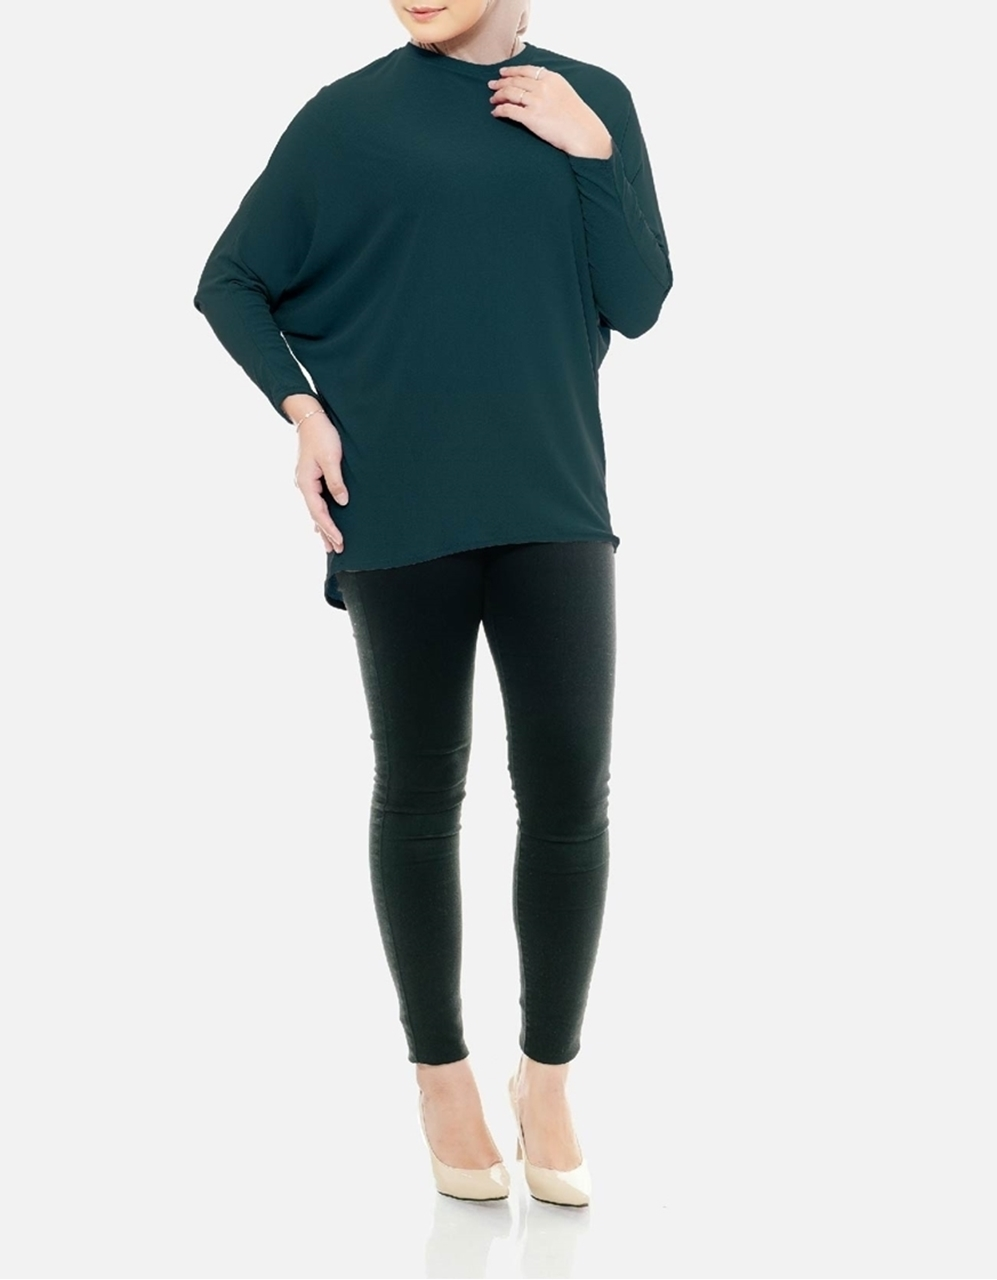 Picture of Sofea Batwing Blouse in Teal Green